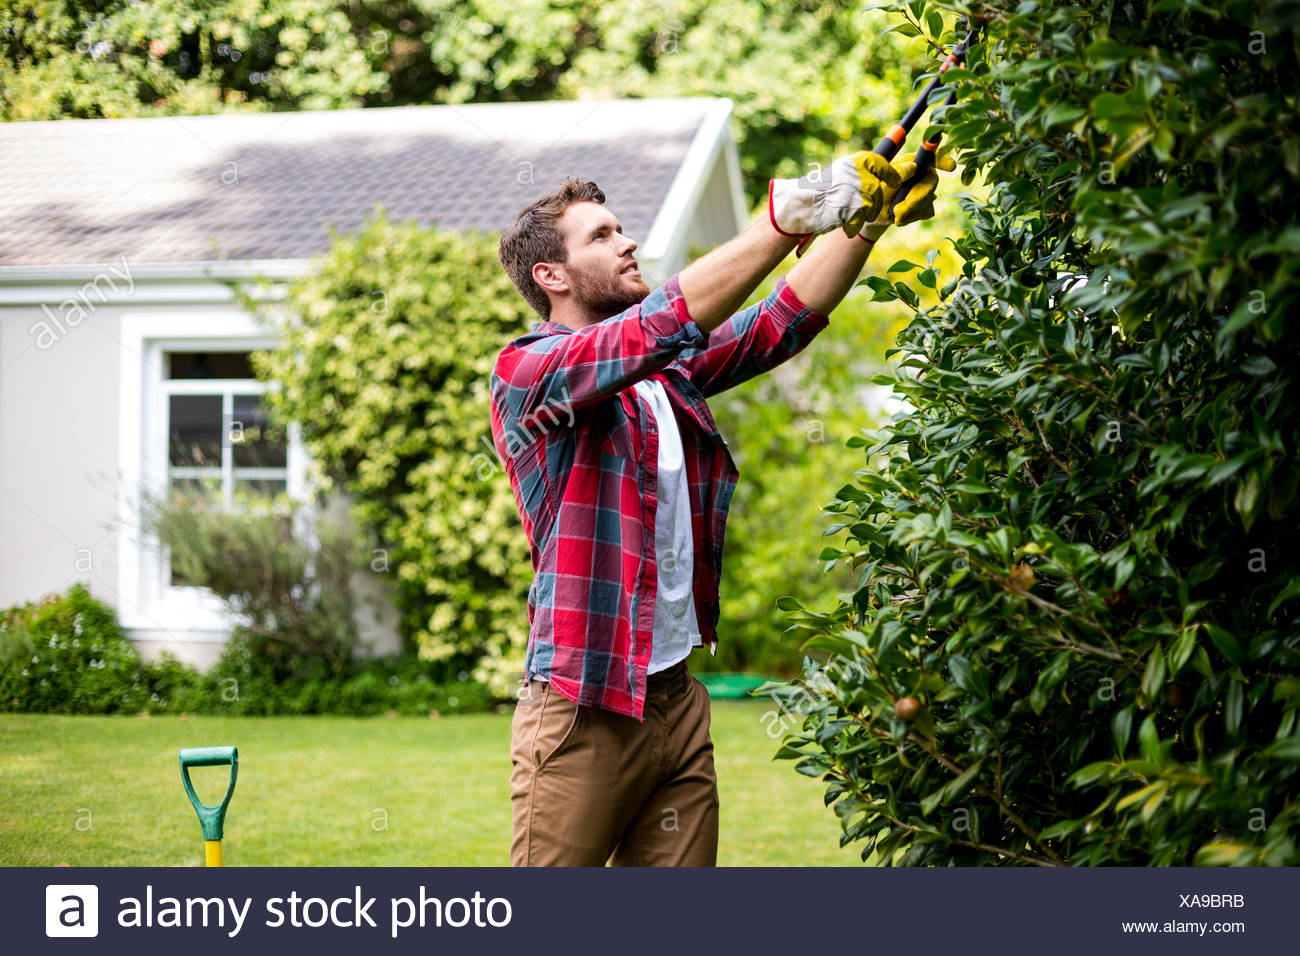 Man trimming plants at yard - Stock Image